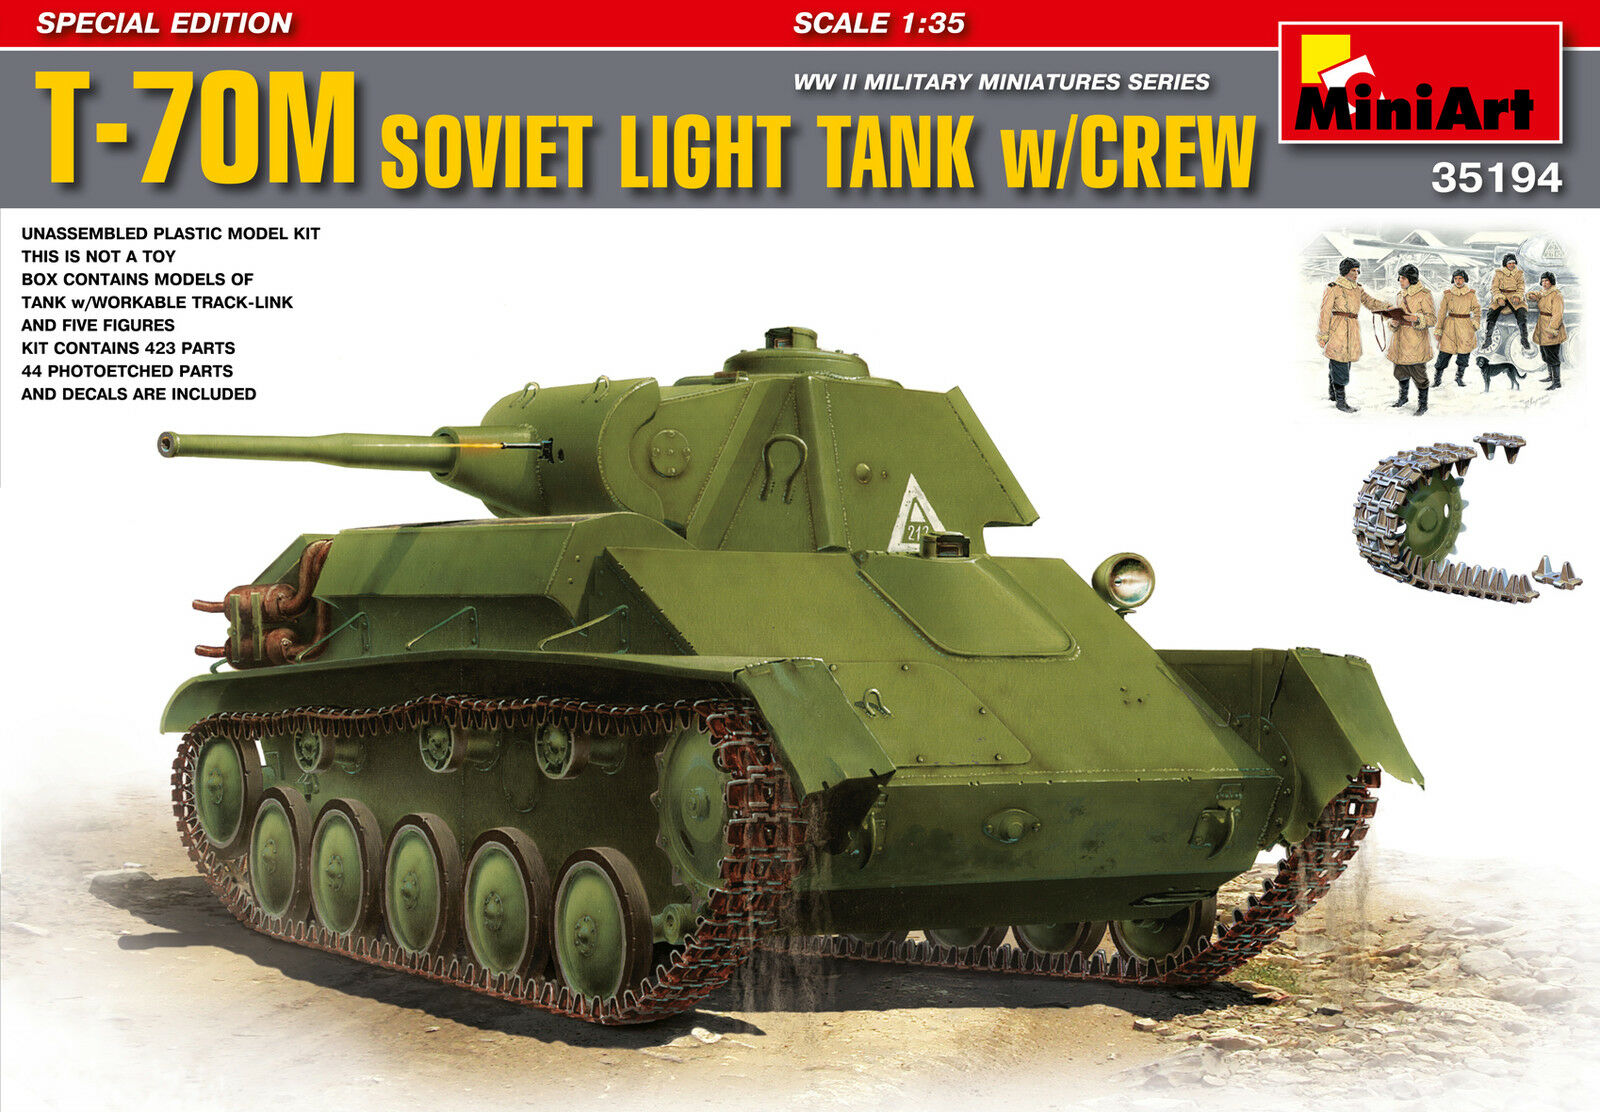 CHAR LEGER SOVIETIQUE T-70M + EQUIPAGE - KIT MINIART 1 35 n° 35194